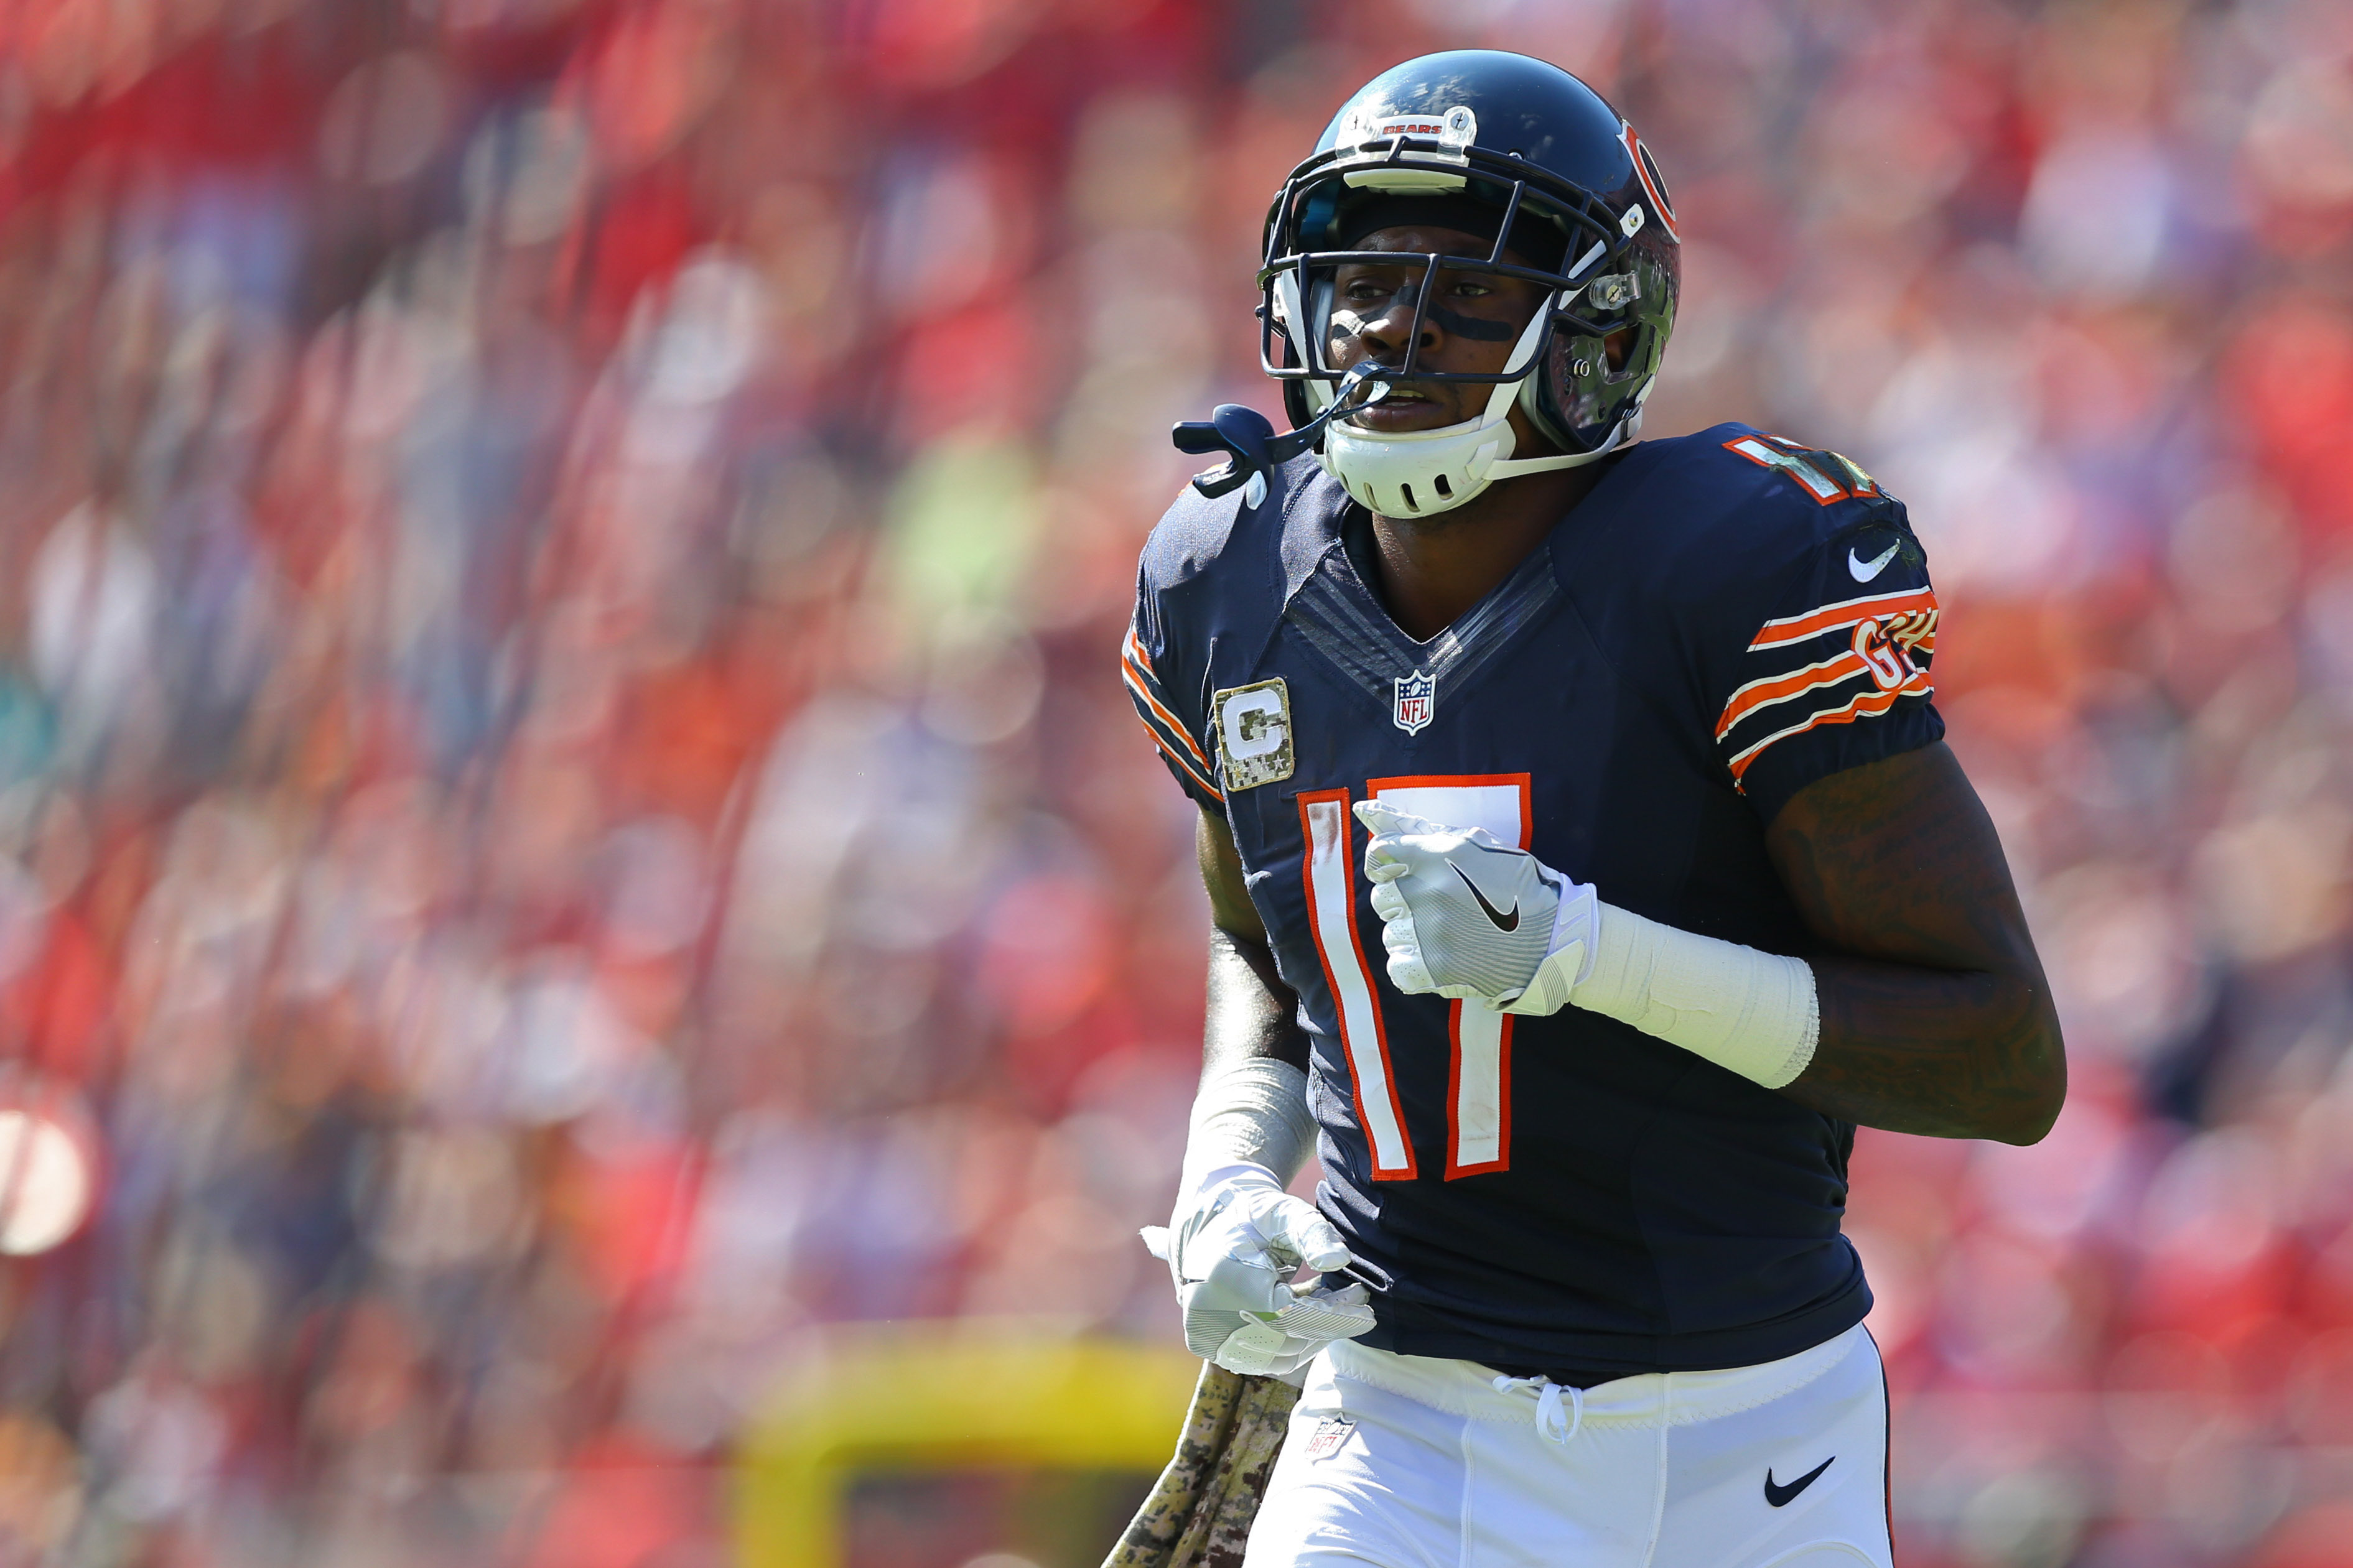 9683160-nfl-chicago-bears-at-tampa-bay-buccaneers